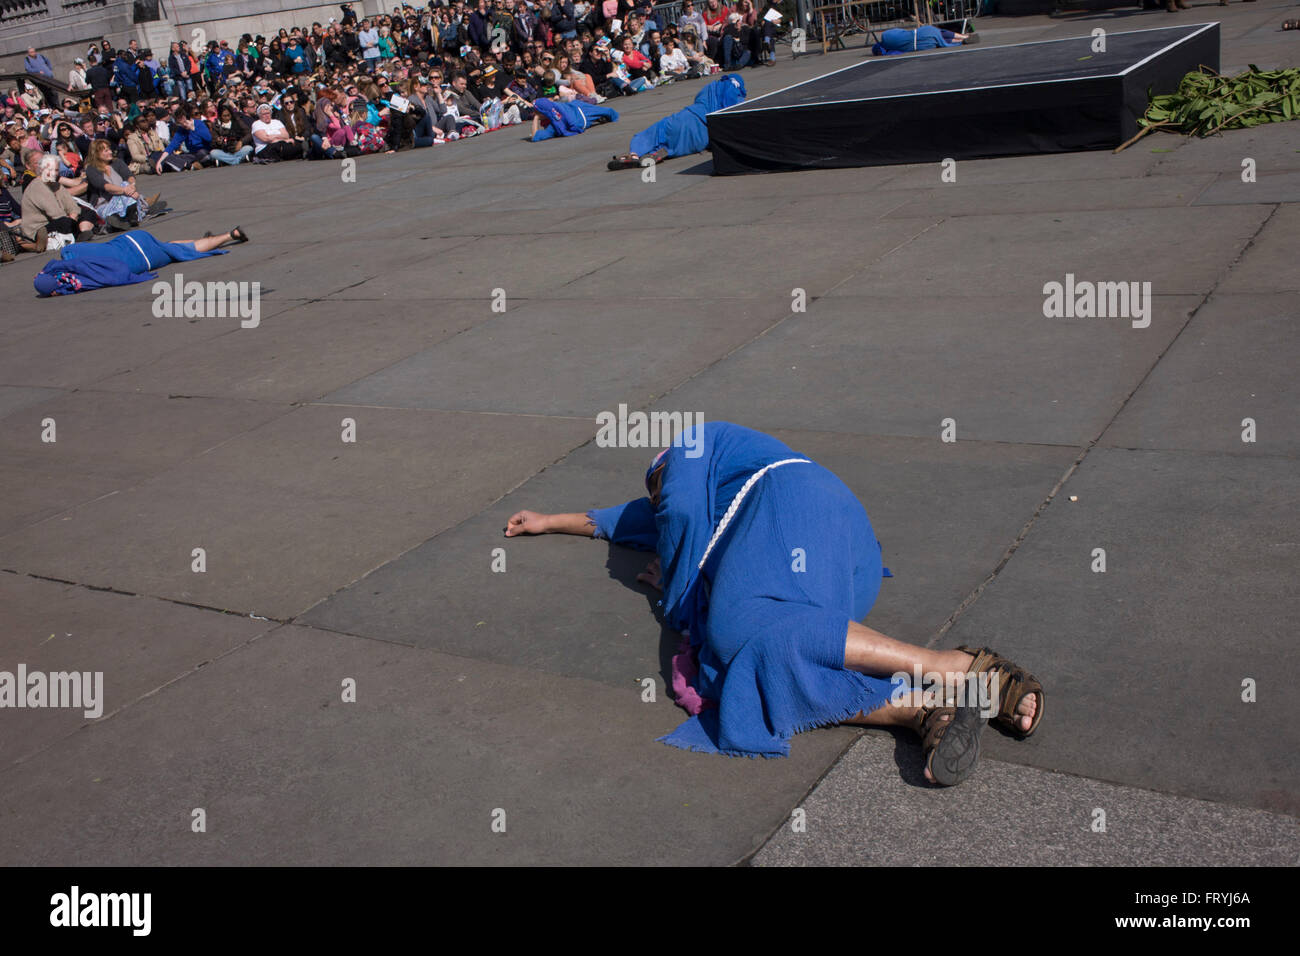 London, UK. 25th March, 2016. The Passion of Jesus is performed in London's Trafalgar Square by members of Wintershall Stock Photo